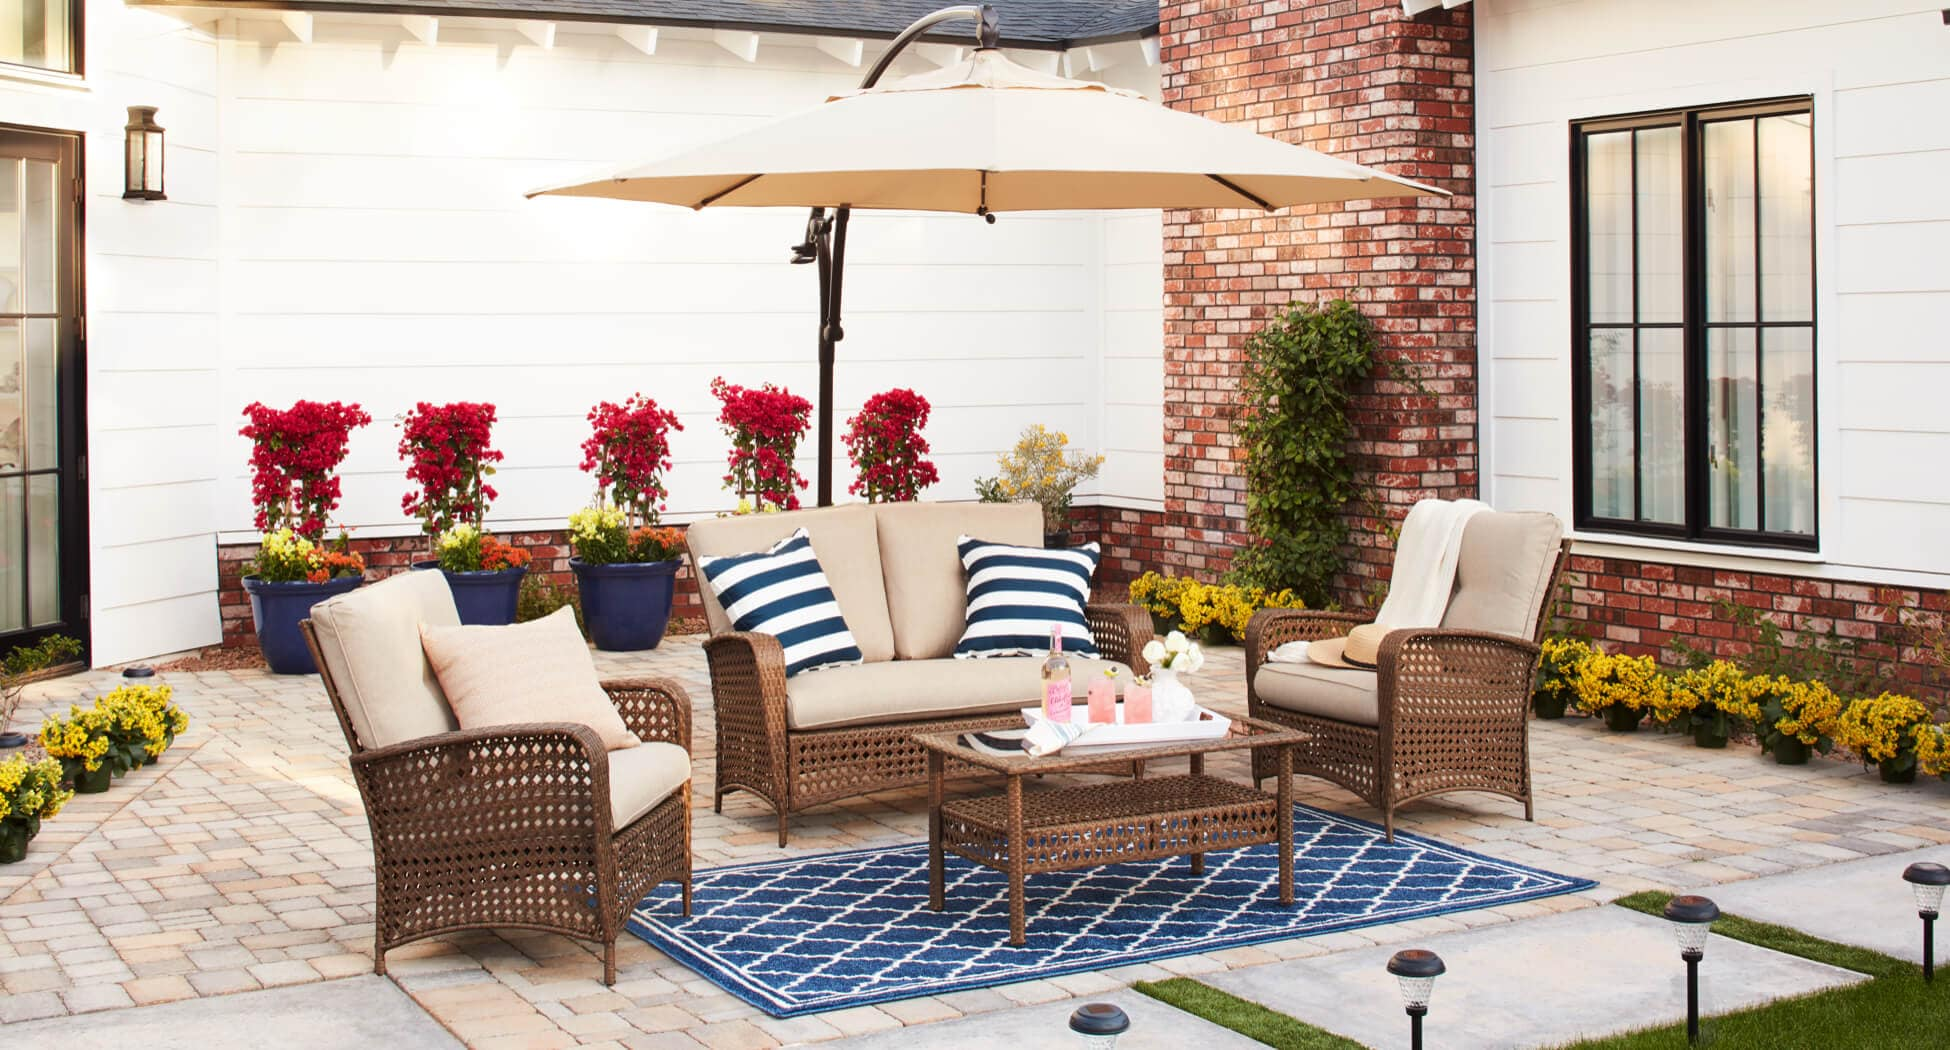 A patio furniture set